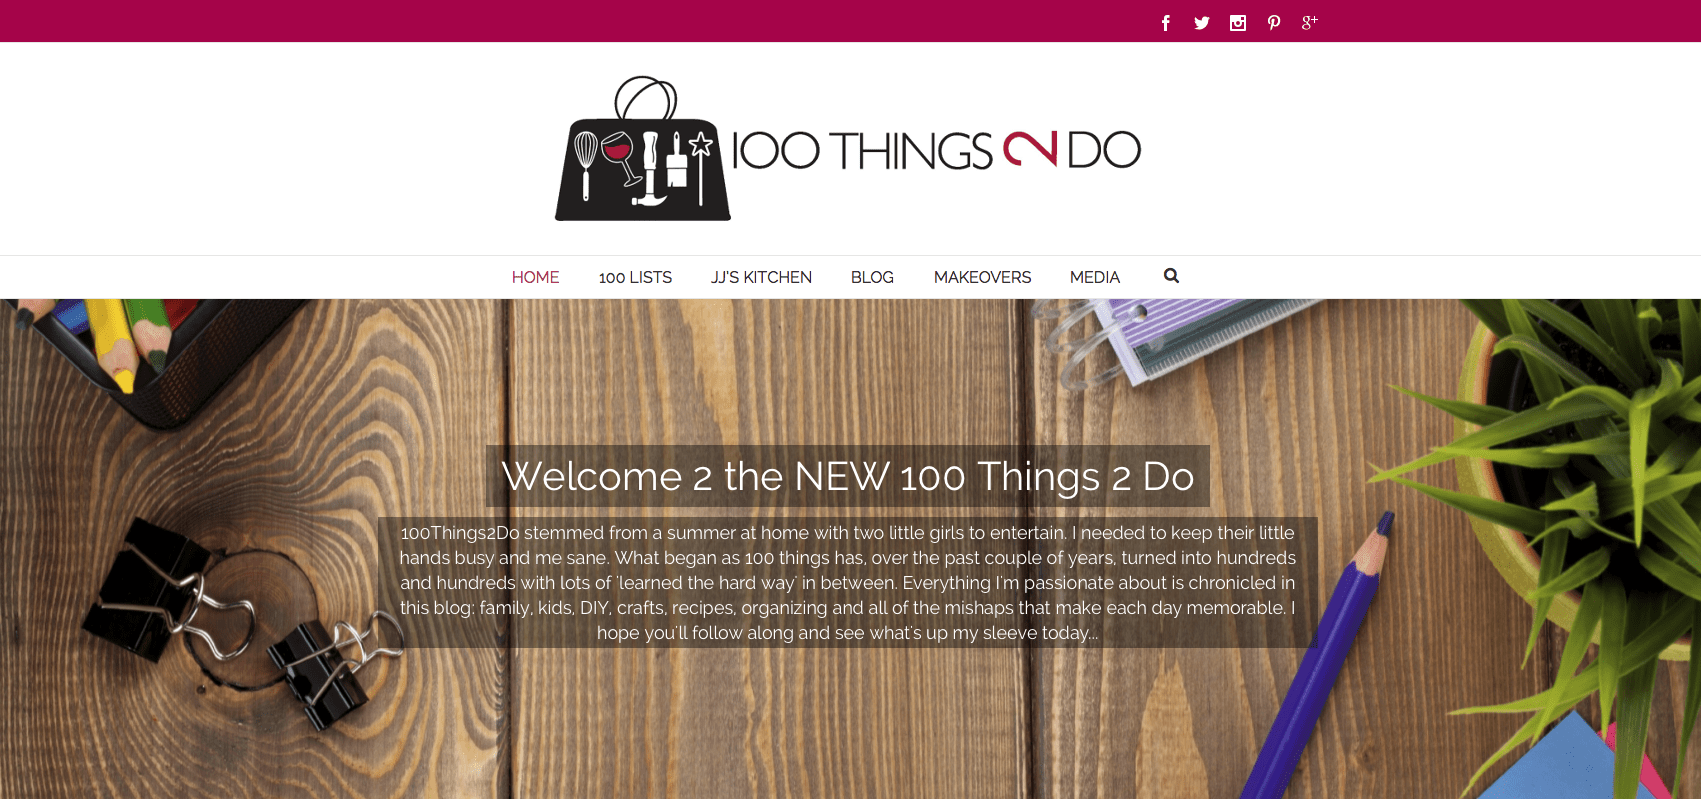 Screen shot of homepage of 100Things2Do website